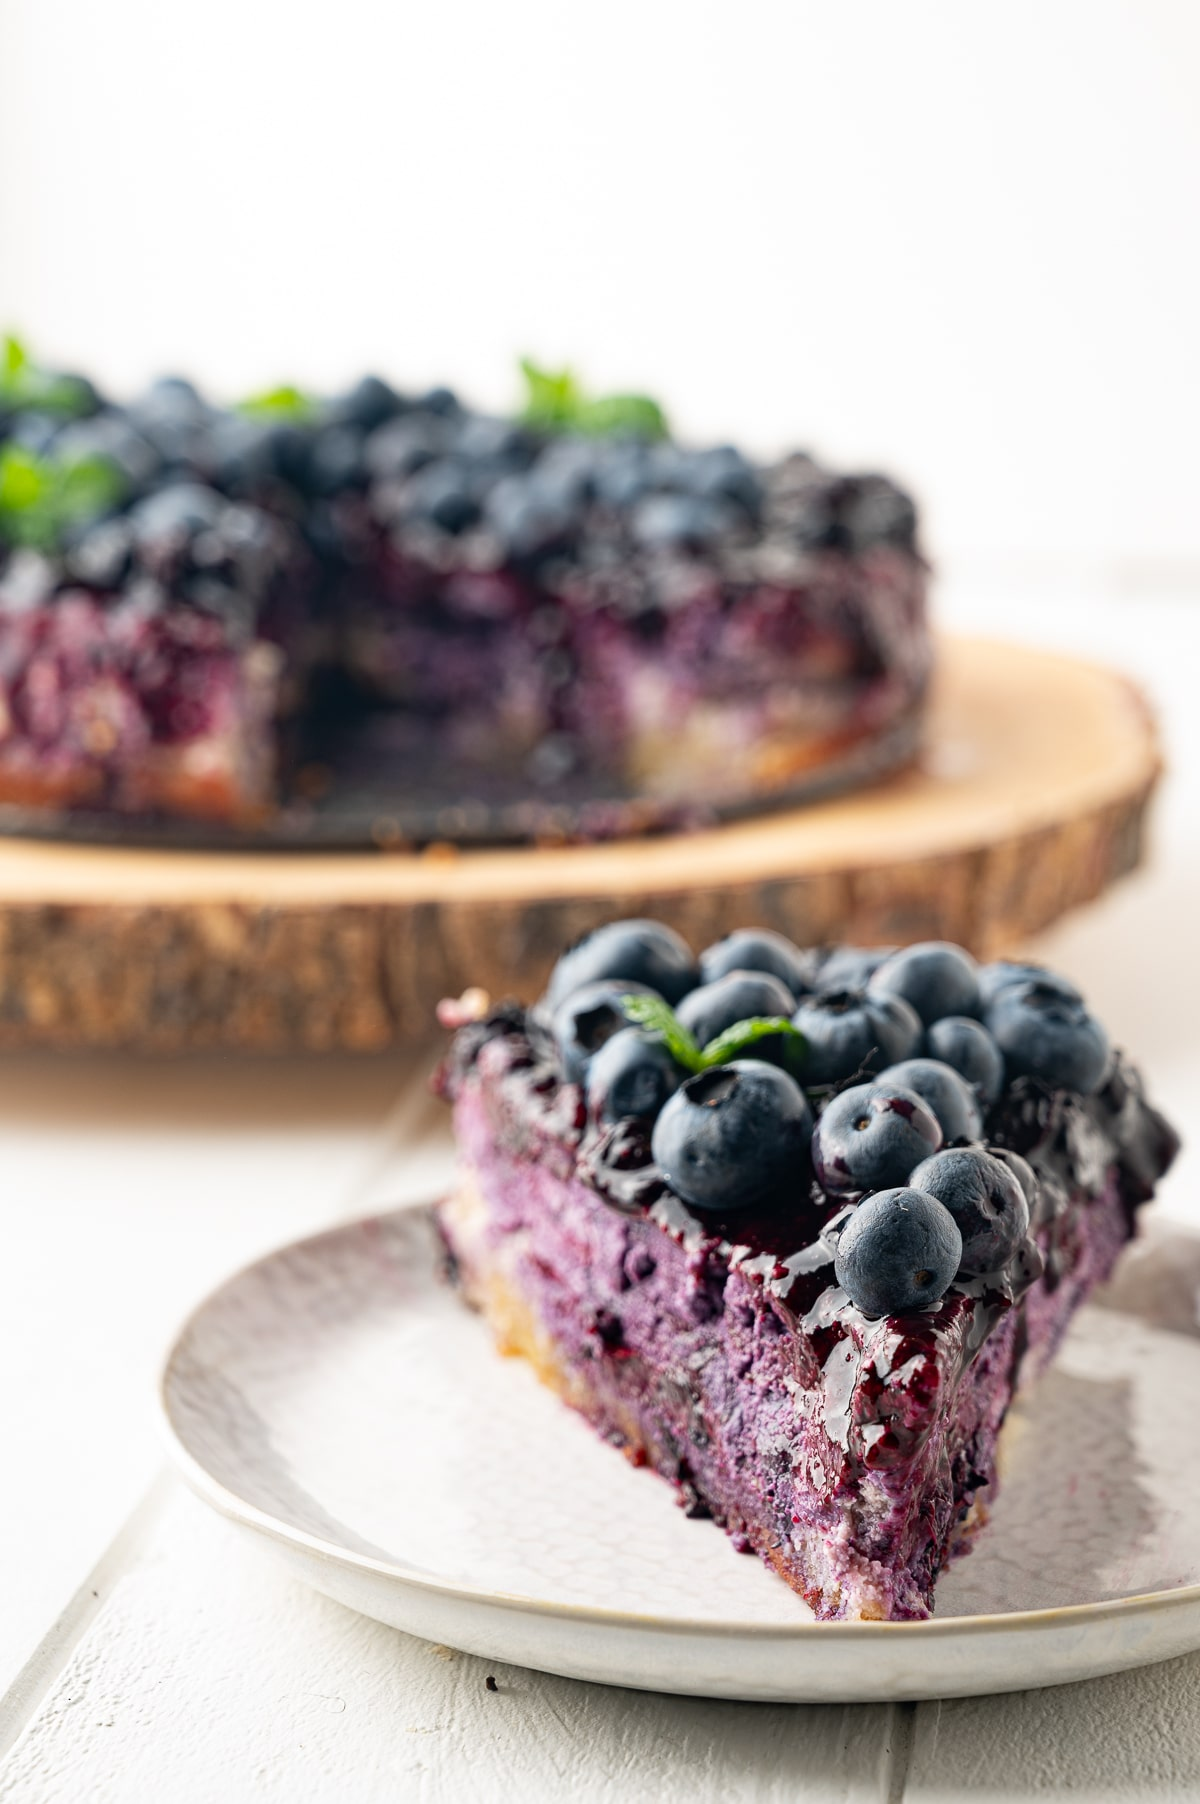 Bright violet colored slice of low carb blueberry cheesecake topped with fresh berries, blueberry drizzle and a sprig of fresh mint.  The cheesecake is in the background out of focus on a rustic wooden tray.